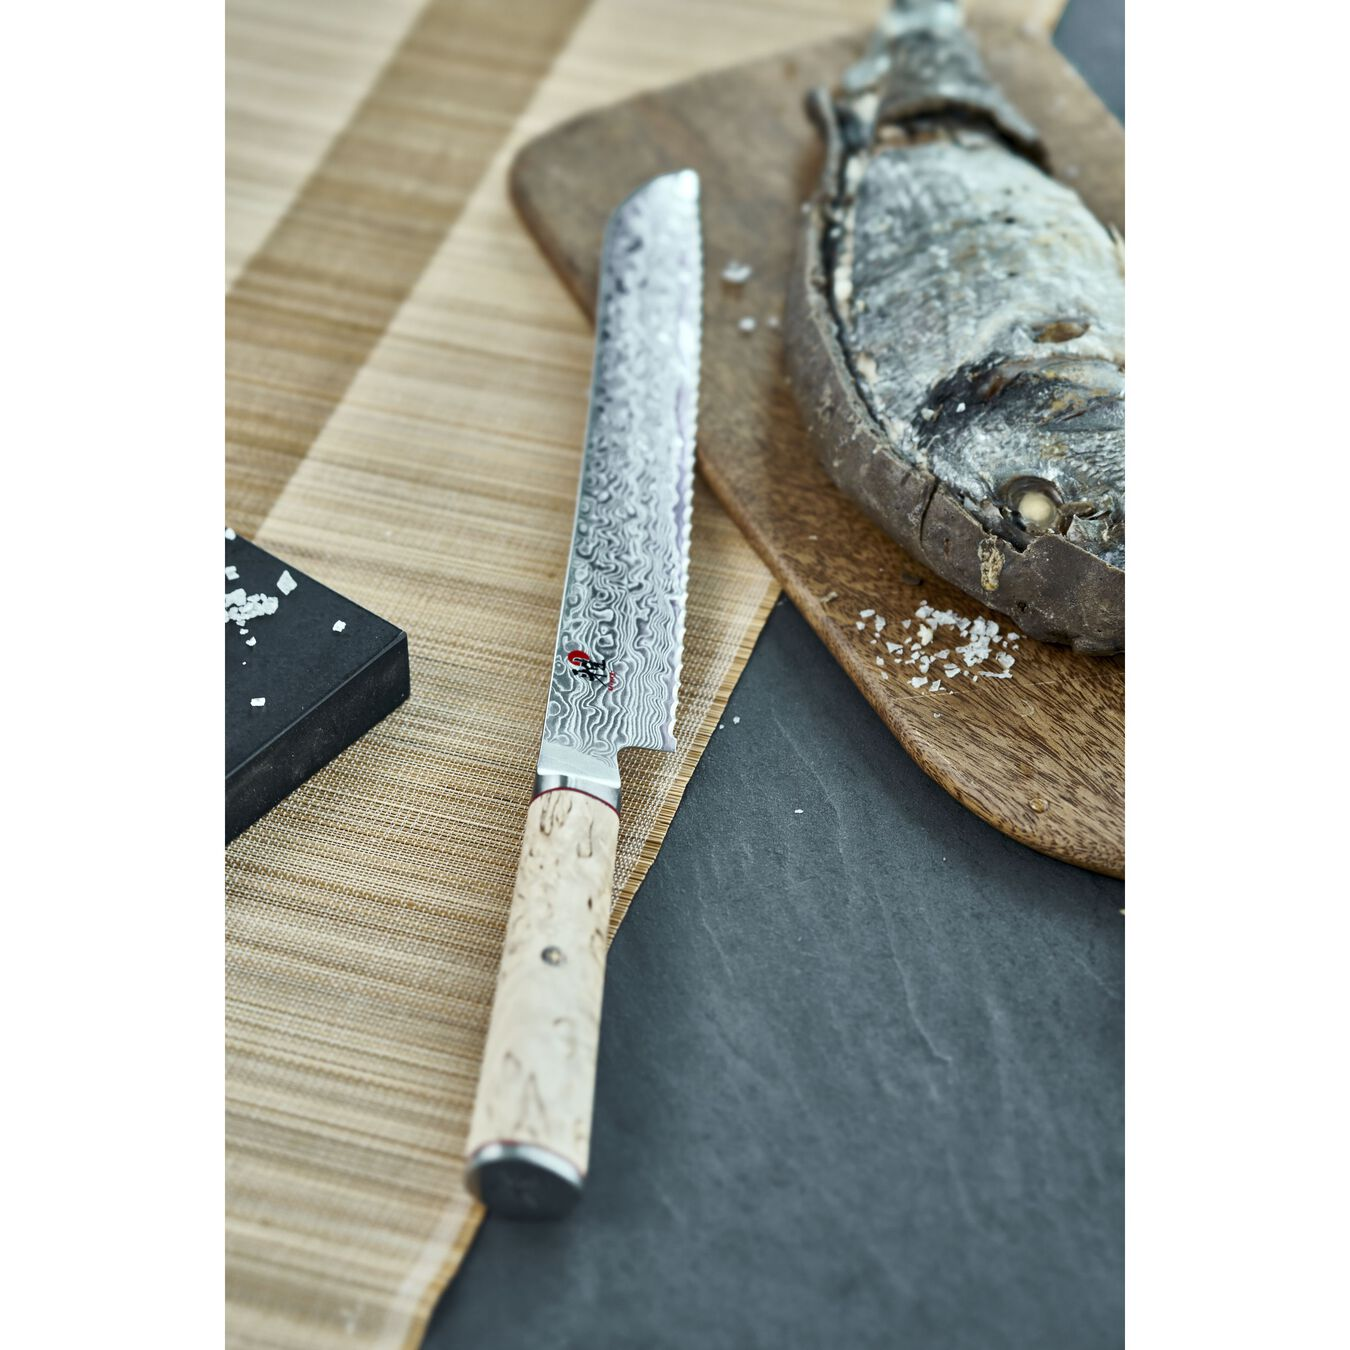 9 inch Bread knife,,large 2